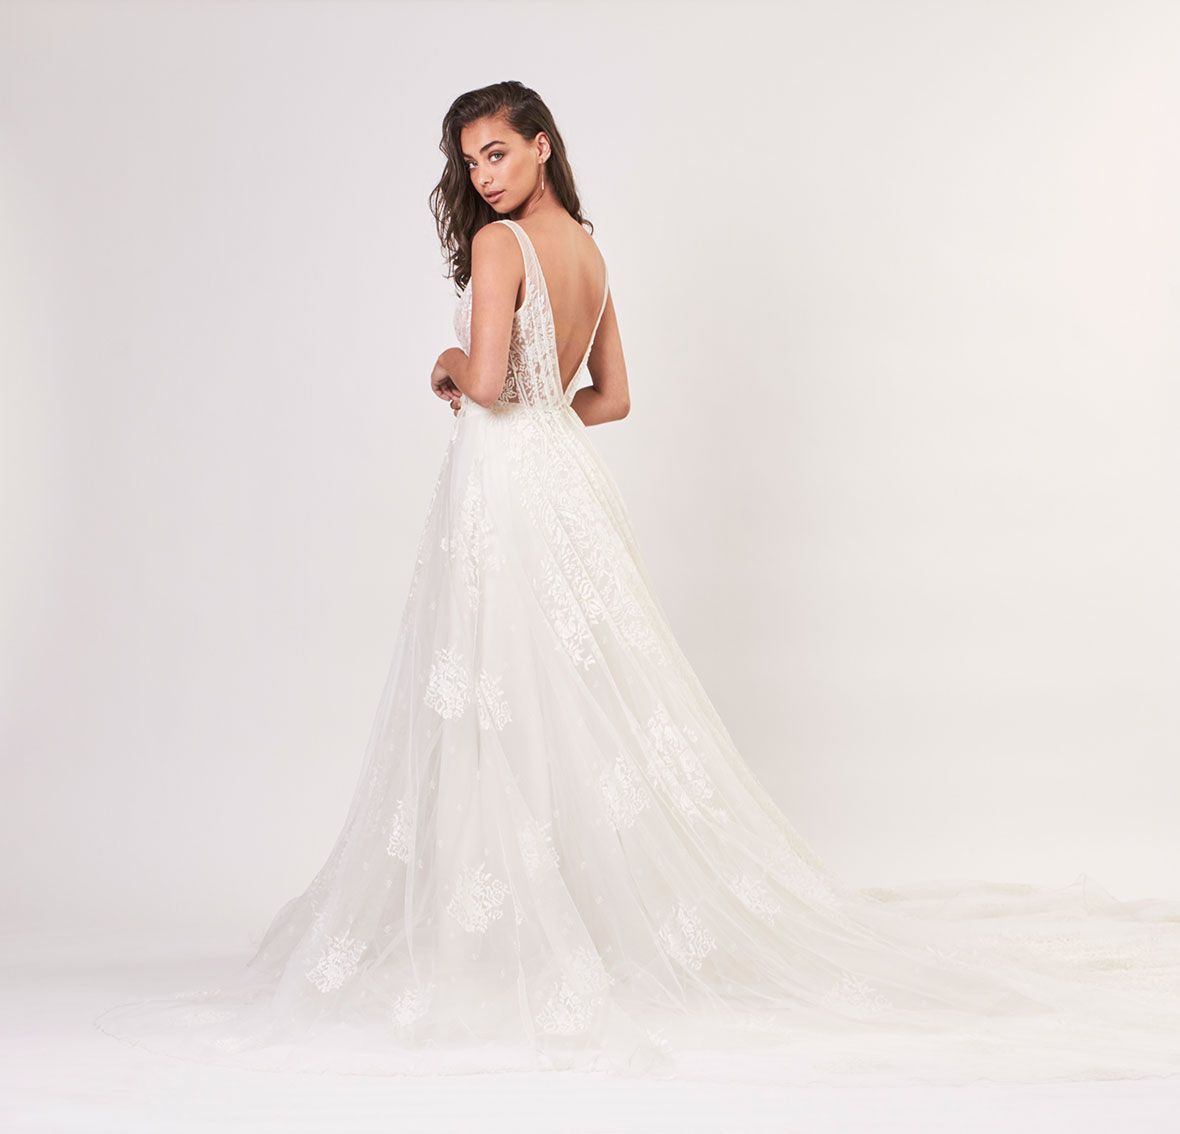 Lace wedding dress with train  HELENA  Mira Mandic  bridal couture gown long lace wedding dress